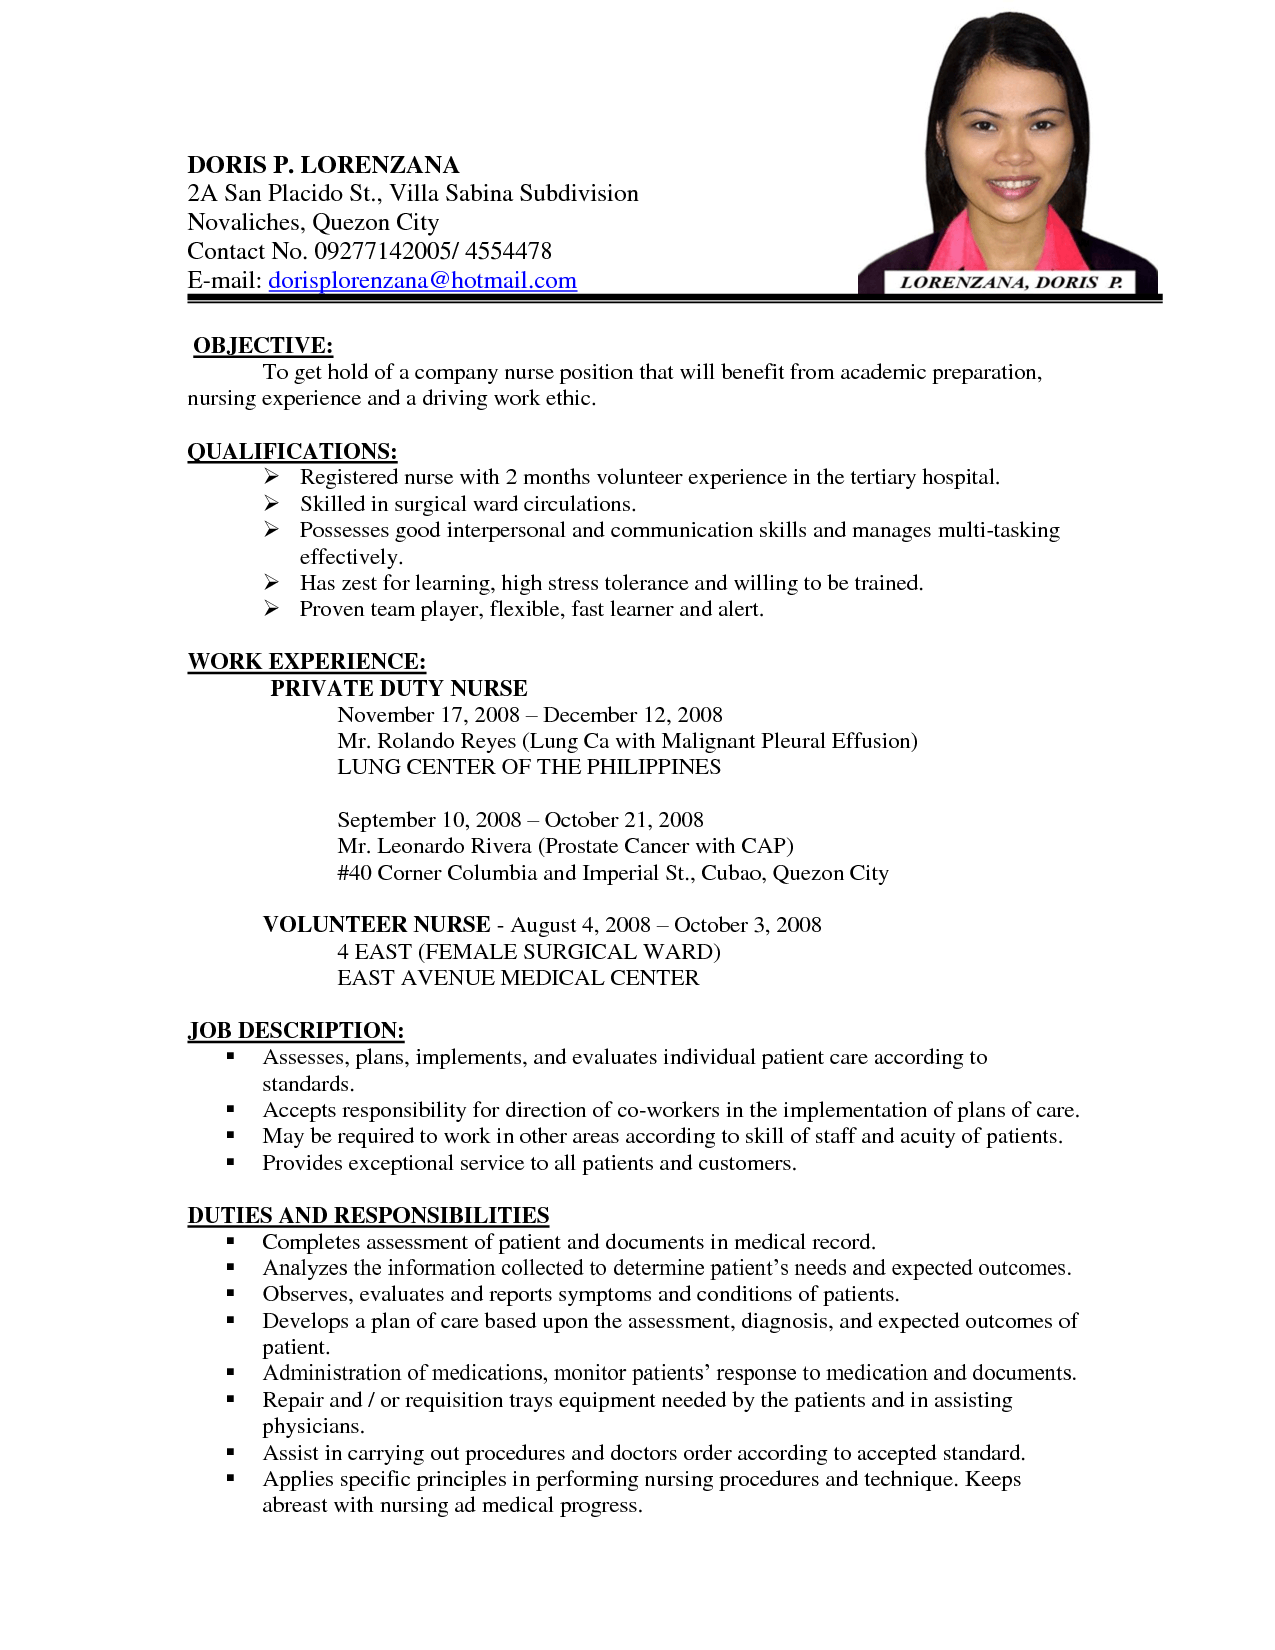 Image Result For Curriculum Vitae Format For A Nurse Card Sample